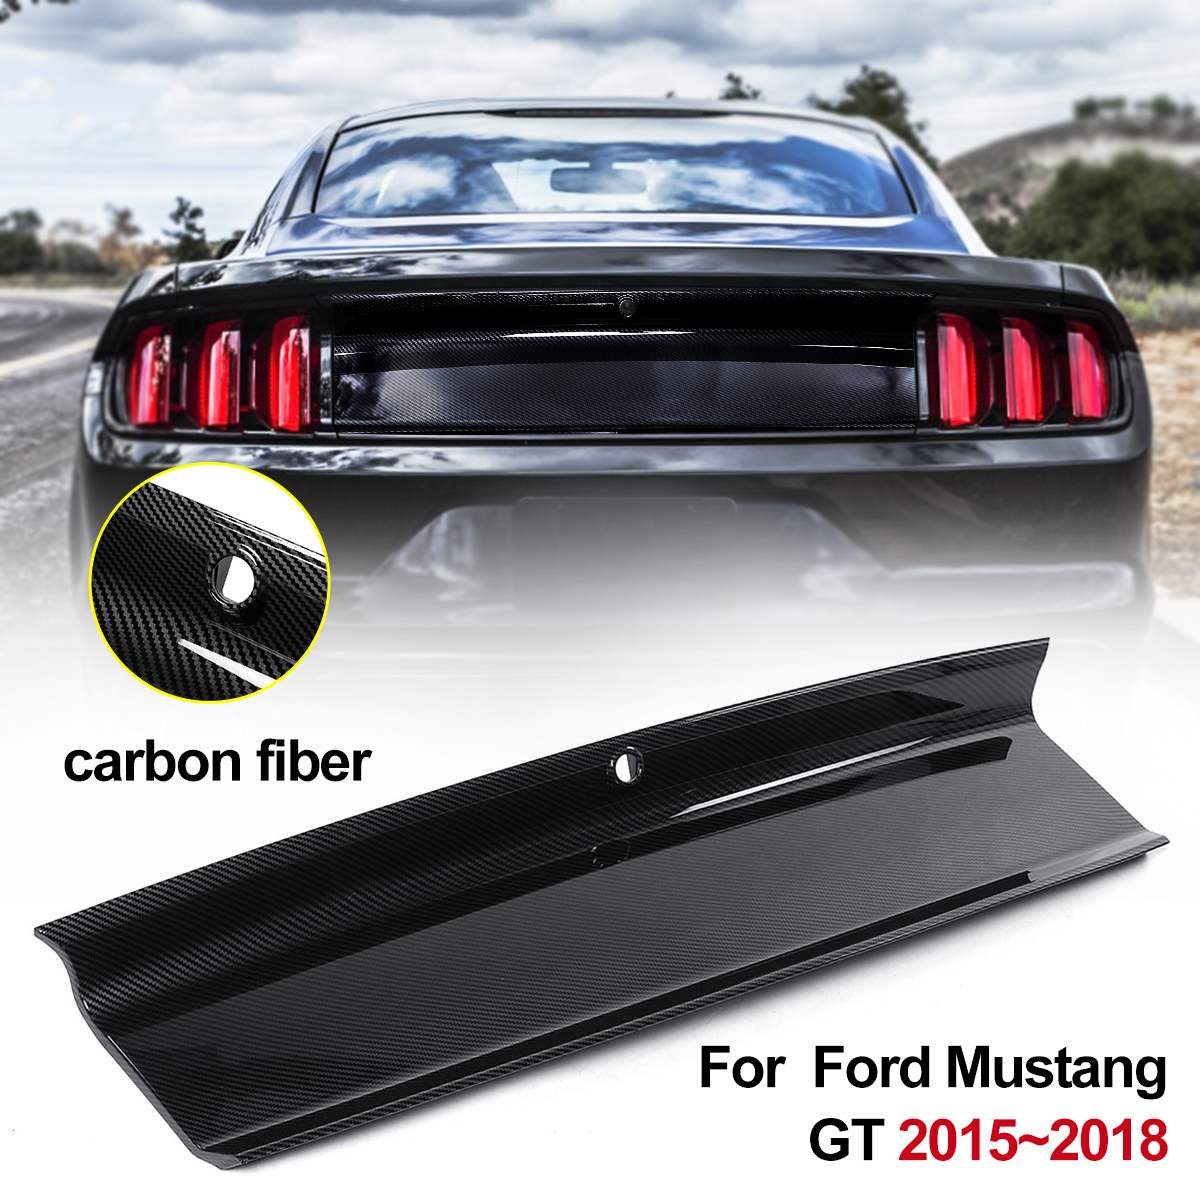 Carbon Fiber ABS Rear Lid Trunk Decklid Panel Cover Kit Trunk Boot Lid Panel For Ford For <font><b>Mustang</b></font> <font><b>2015</b></font> 2016 2017 2018 <font><b>2019</b></font> image